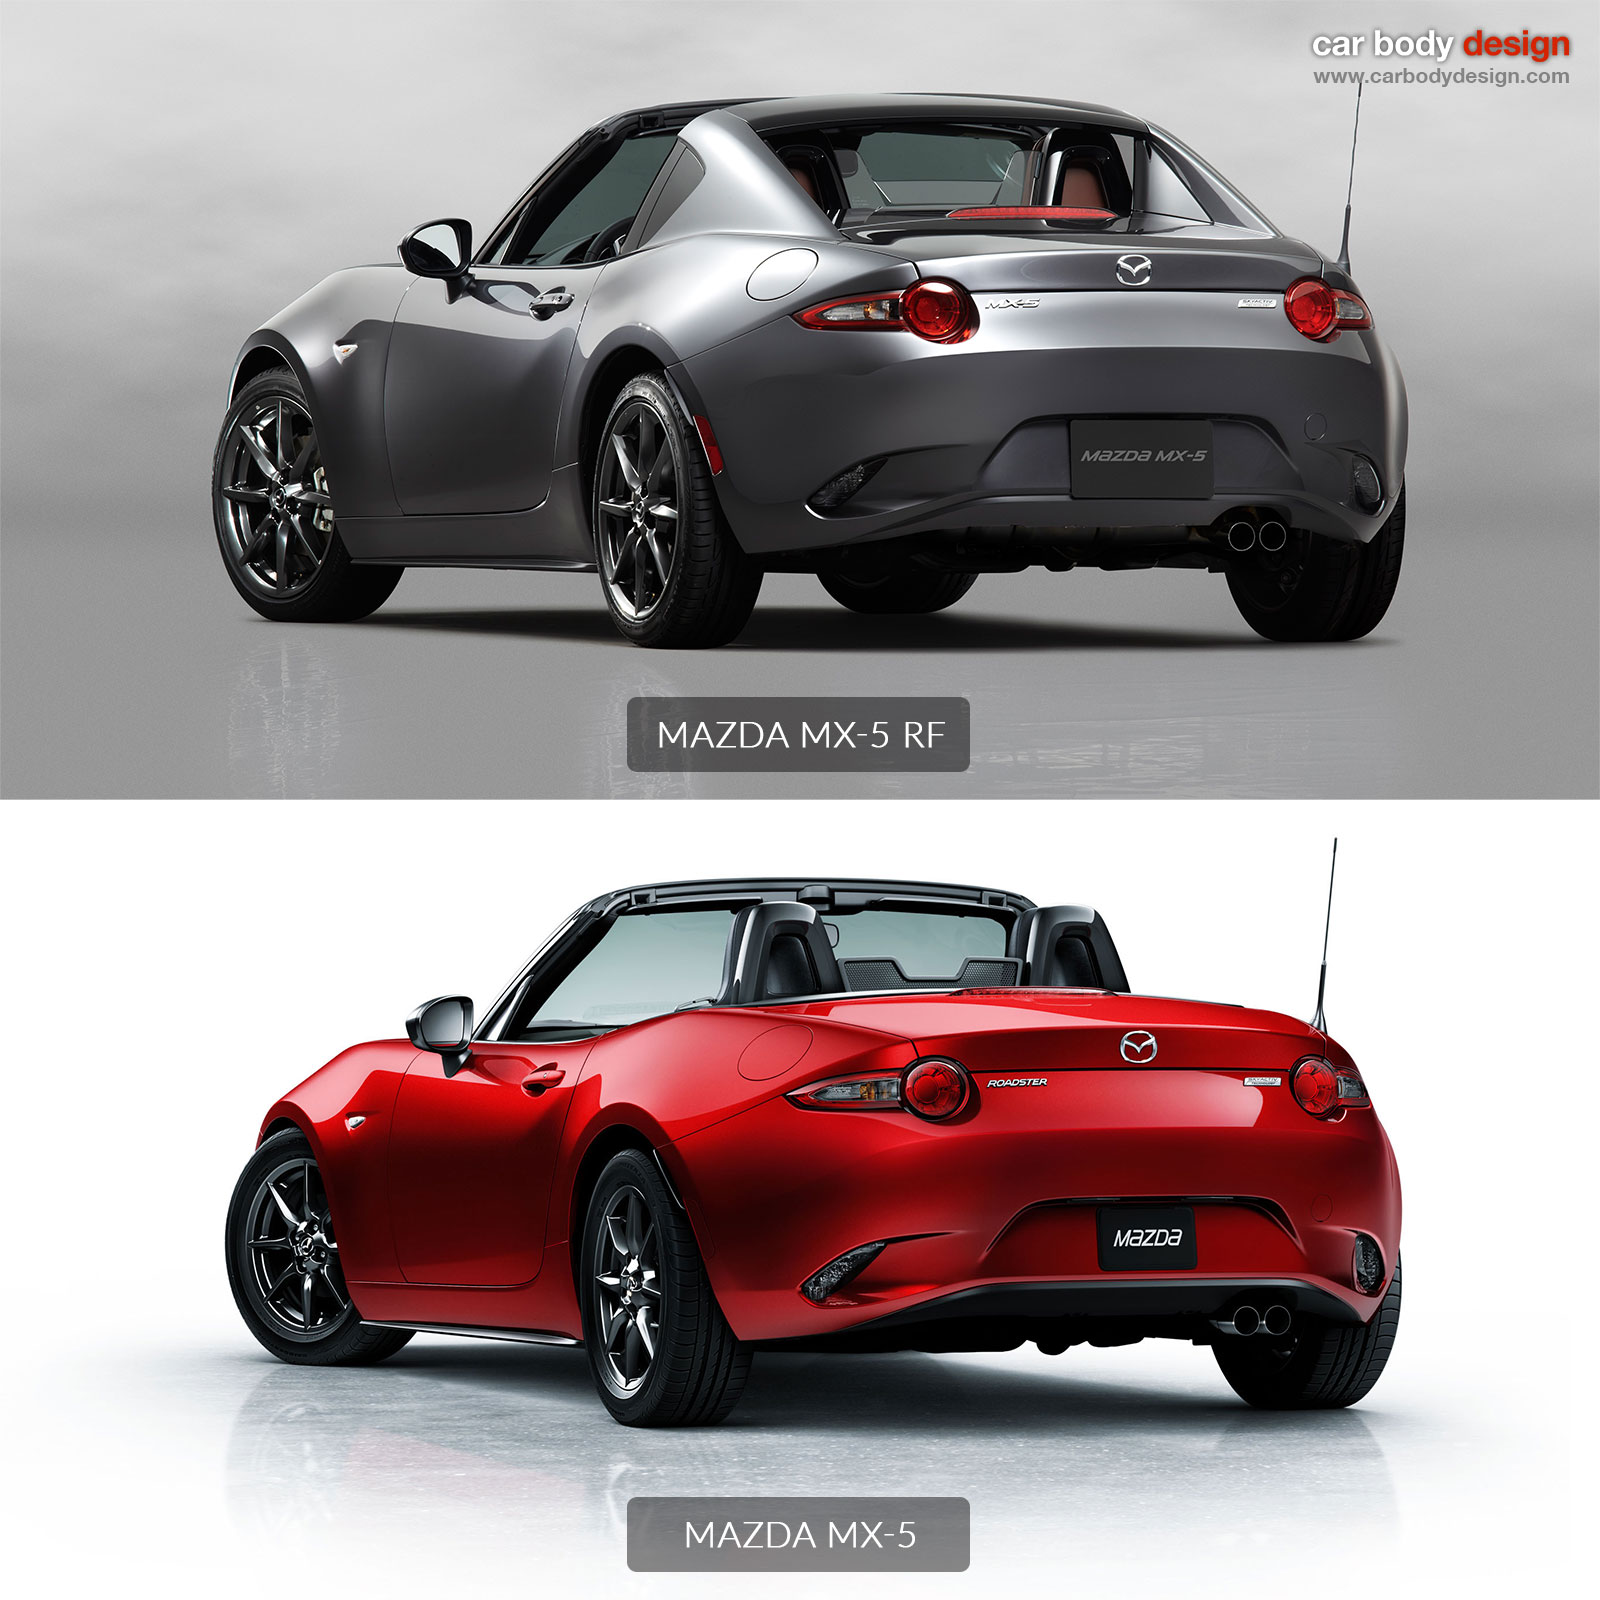 Mazda Mx 5 Rf Vs Mx 5 Design Comparison Car Body Design